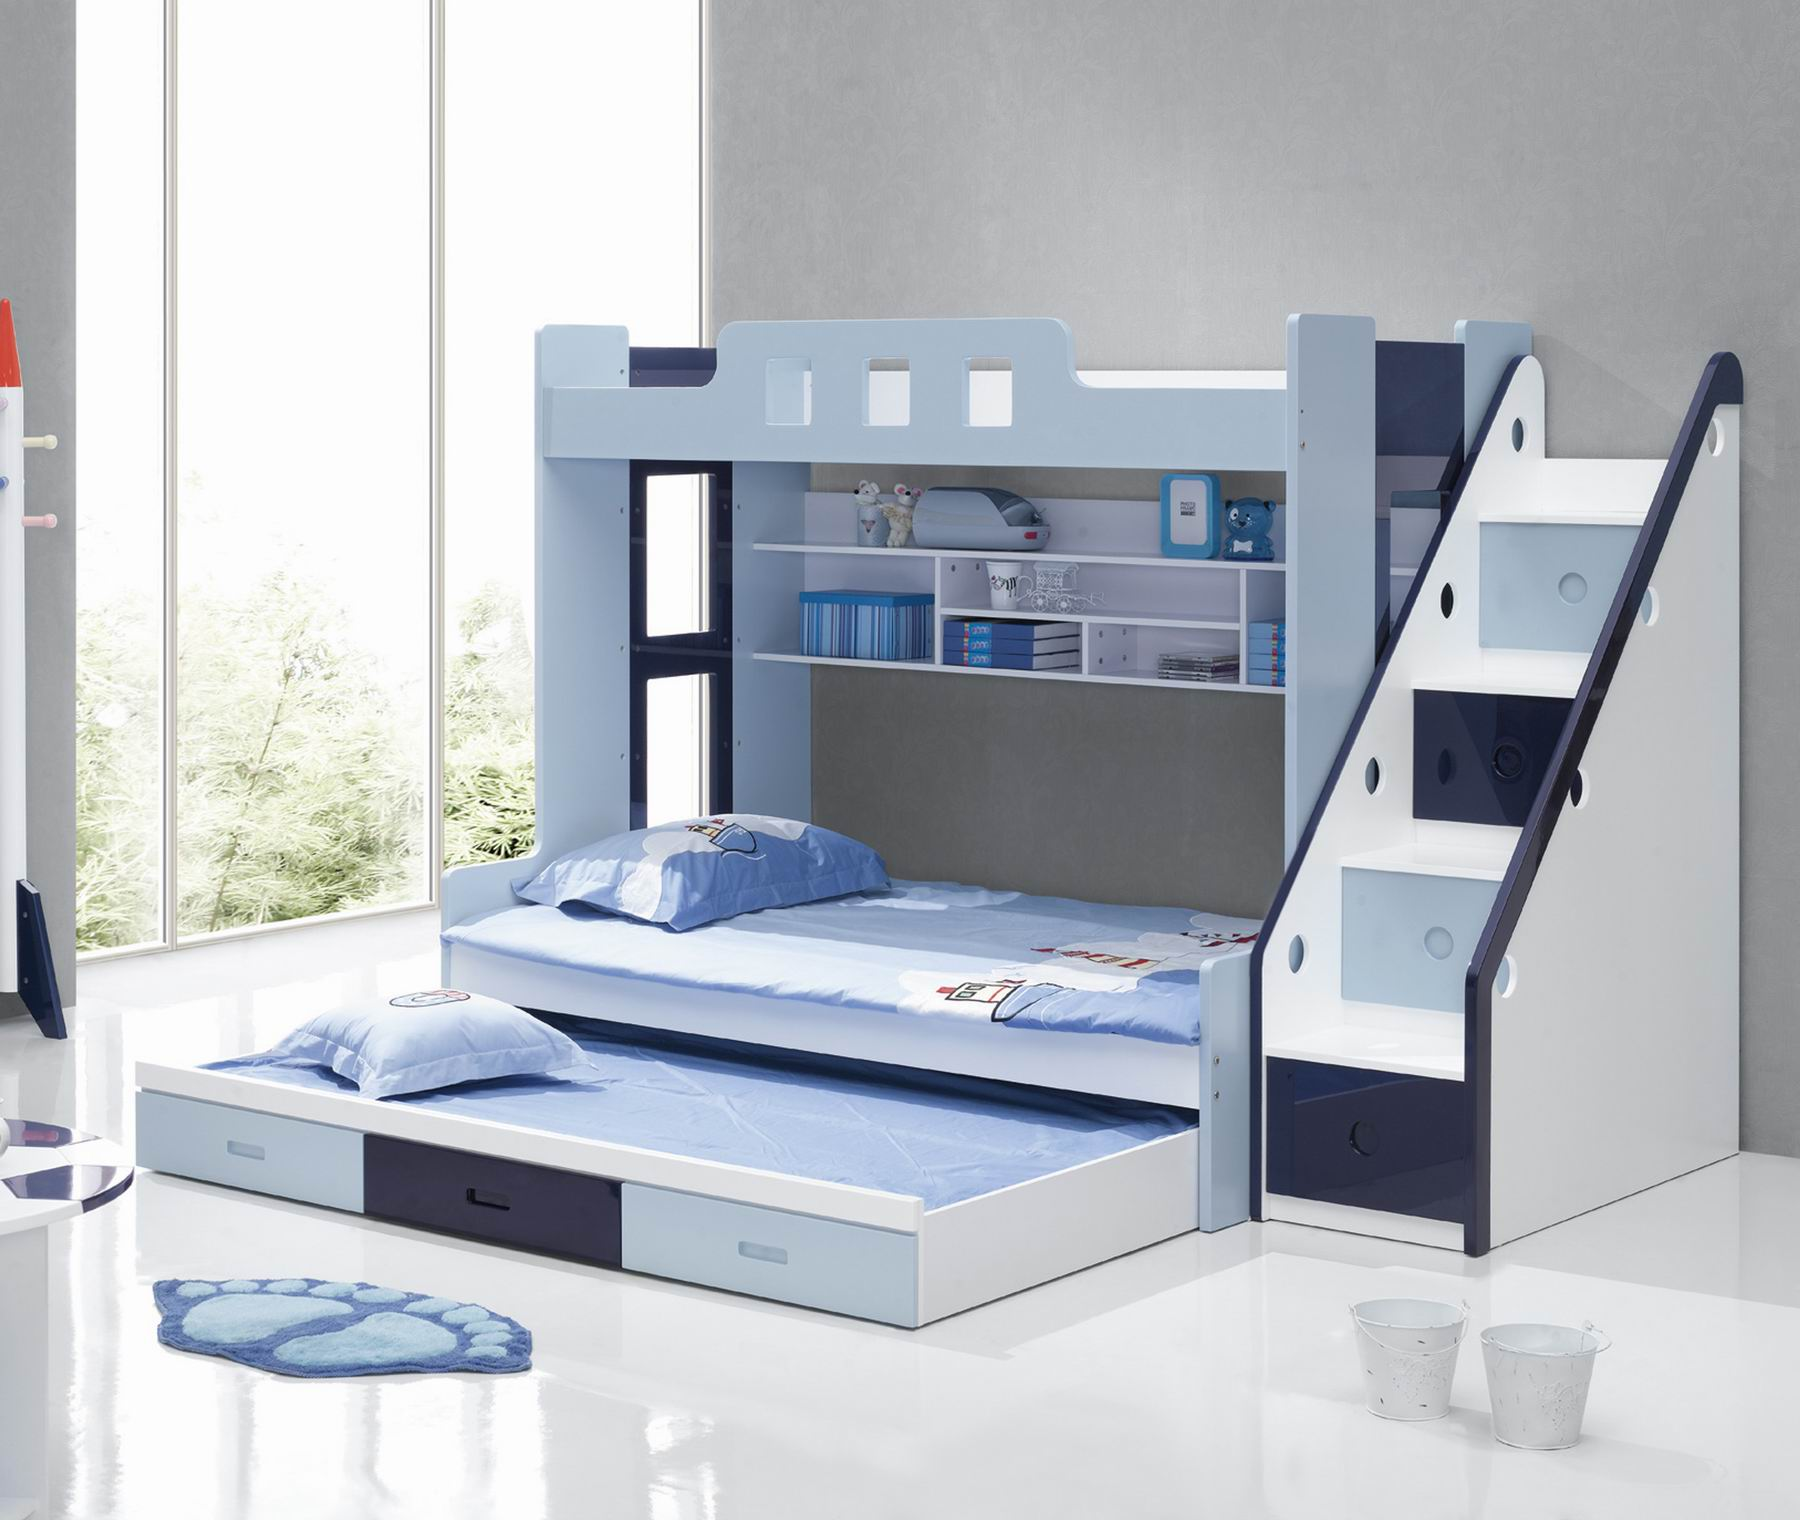 25 diy bunk beds with plans guide patterns for Three bed